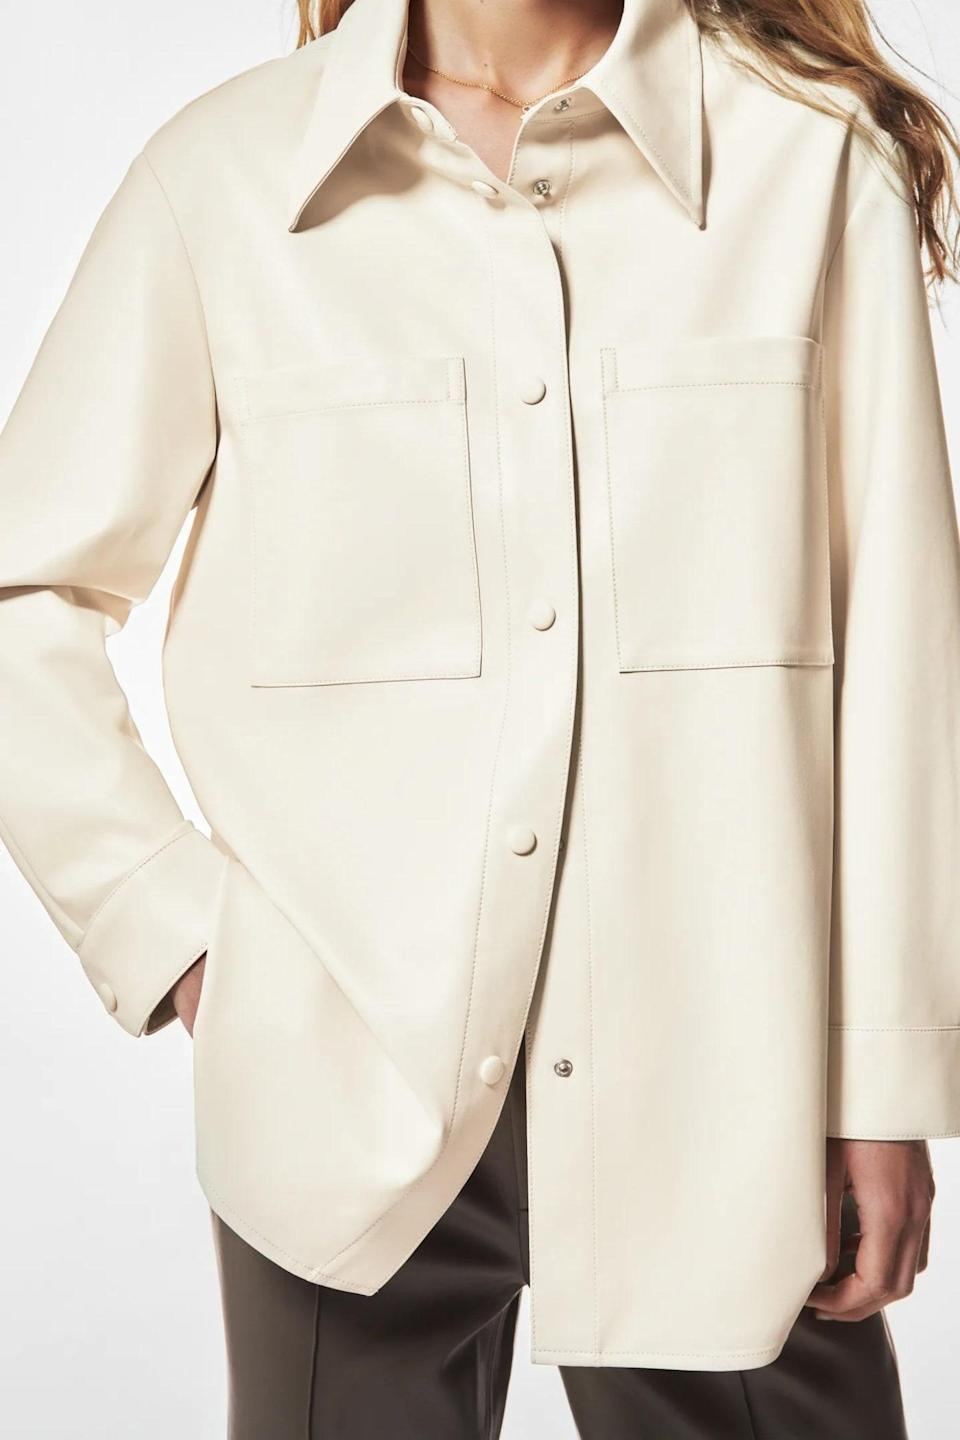 """For the love of leather, slip into this creamy number from Zara. We love it worn open over a <a href=""""https://www.glamour.com/gallery/best-t-shirts-for-women?mbid=synd_yahoo_rss"""" rel=""""nofollow noopener"""" target=""""_blank"""" data-ylk=""""slk:T-shirt"""" class=""""link rapid-noclick-resp"""">T-shirt</a> to put an edgy spin on <a href=""""https://www.glamour.com/gallery/35-fall-jackets-coats?mbid=synd_yahoo_rss"""" rel=""""nofollow noopener"""" target=""""_blank"""" data-ylk=""""slk:your fall layering system"""" class=""""link rapid-noclick-resp"""">your fall layering system</a>. $70, Zara. <a href=""""https://www.zara.com/us/en/faux-leather-oversized-shirt-p03811240.html?v1=119538314"""" rel=""""nofollow noopener"""" target=""""_blank"""" data-ylk=""""slk:Get it now!"""" class=""""link rapid-noclick-resp"""">Get it now!</a>"""